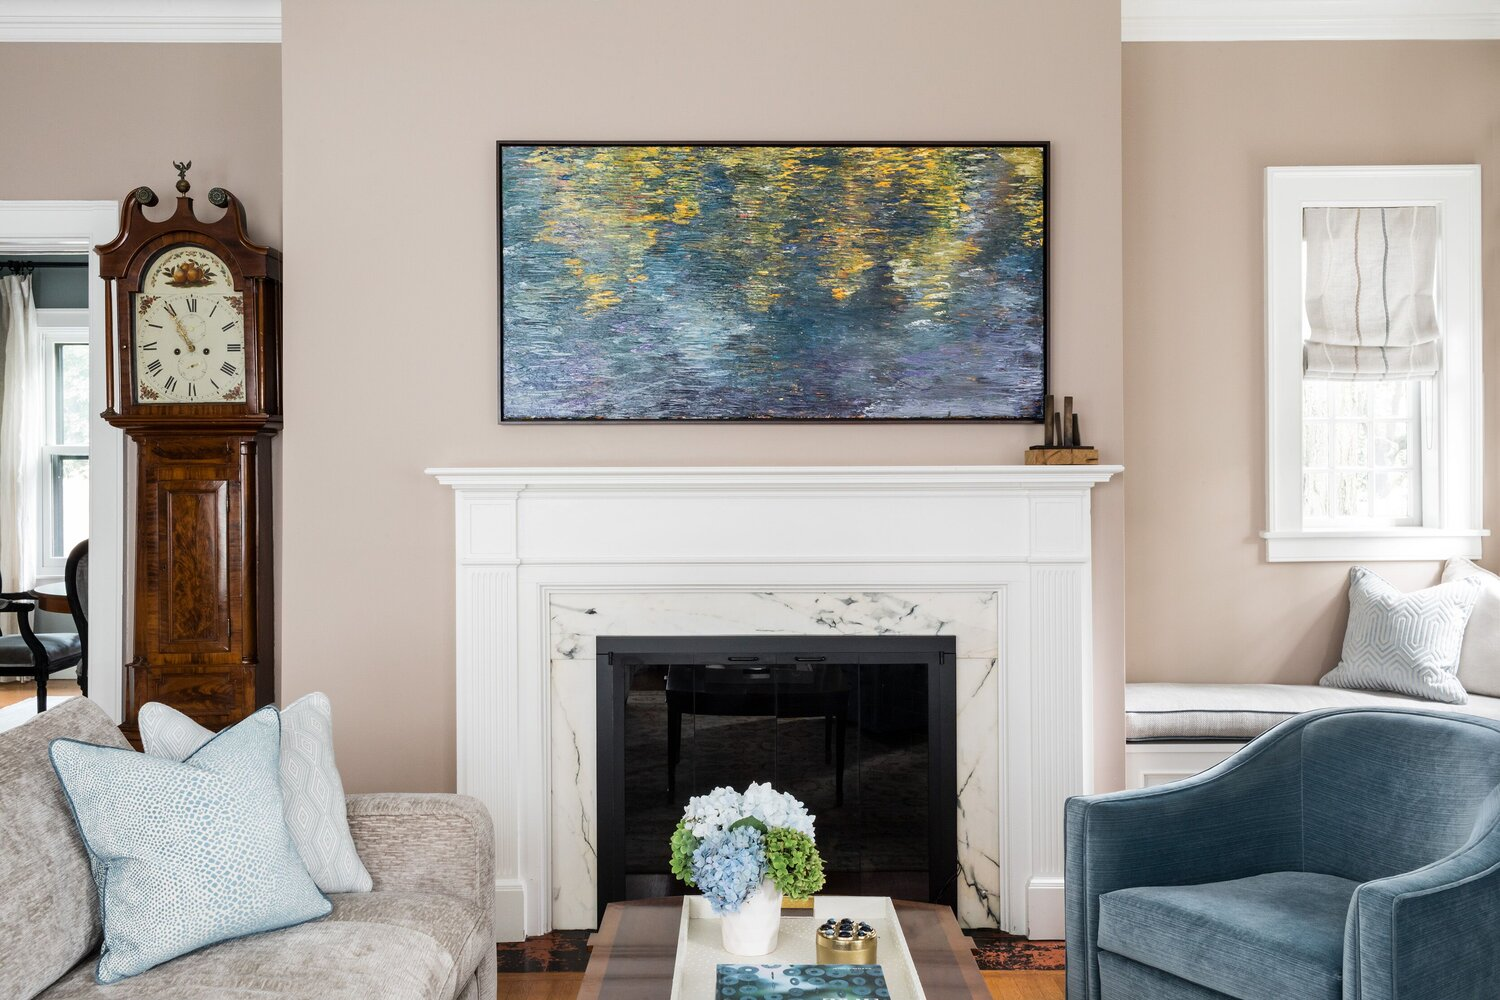 Acampora-Interiors-Tailored-Brookline-Family-Room-2